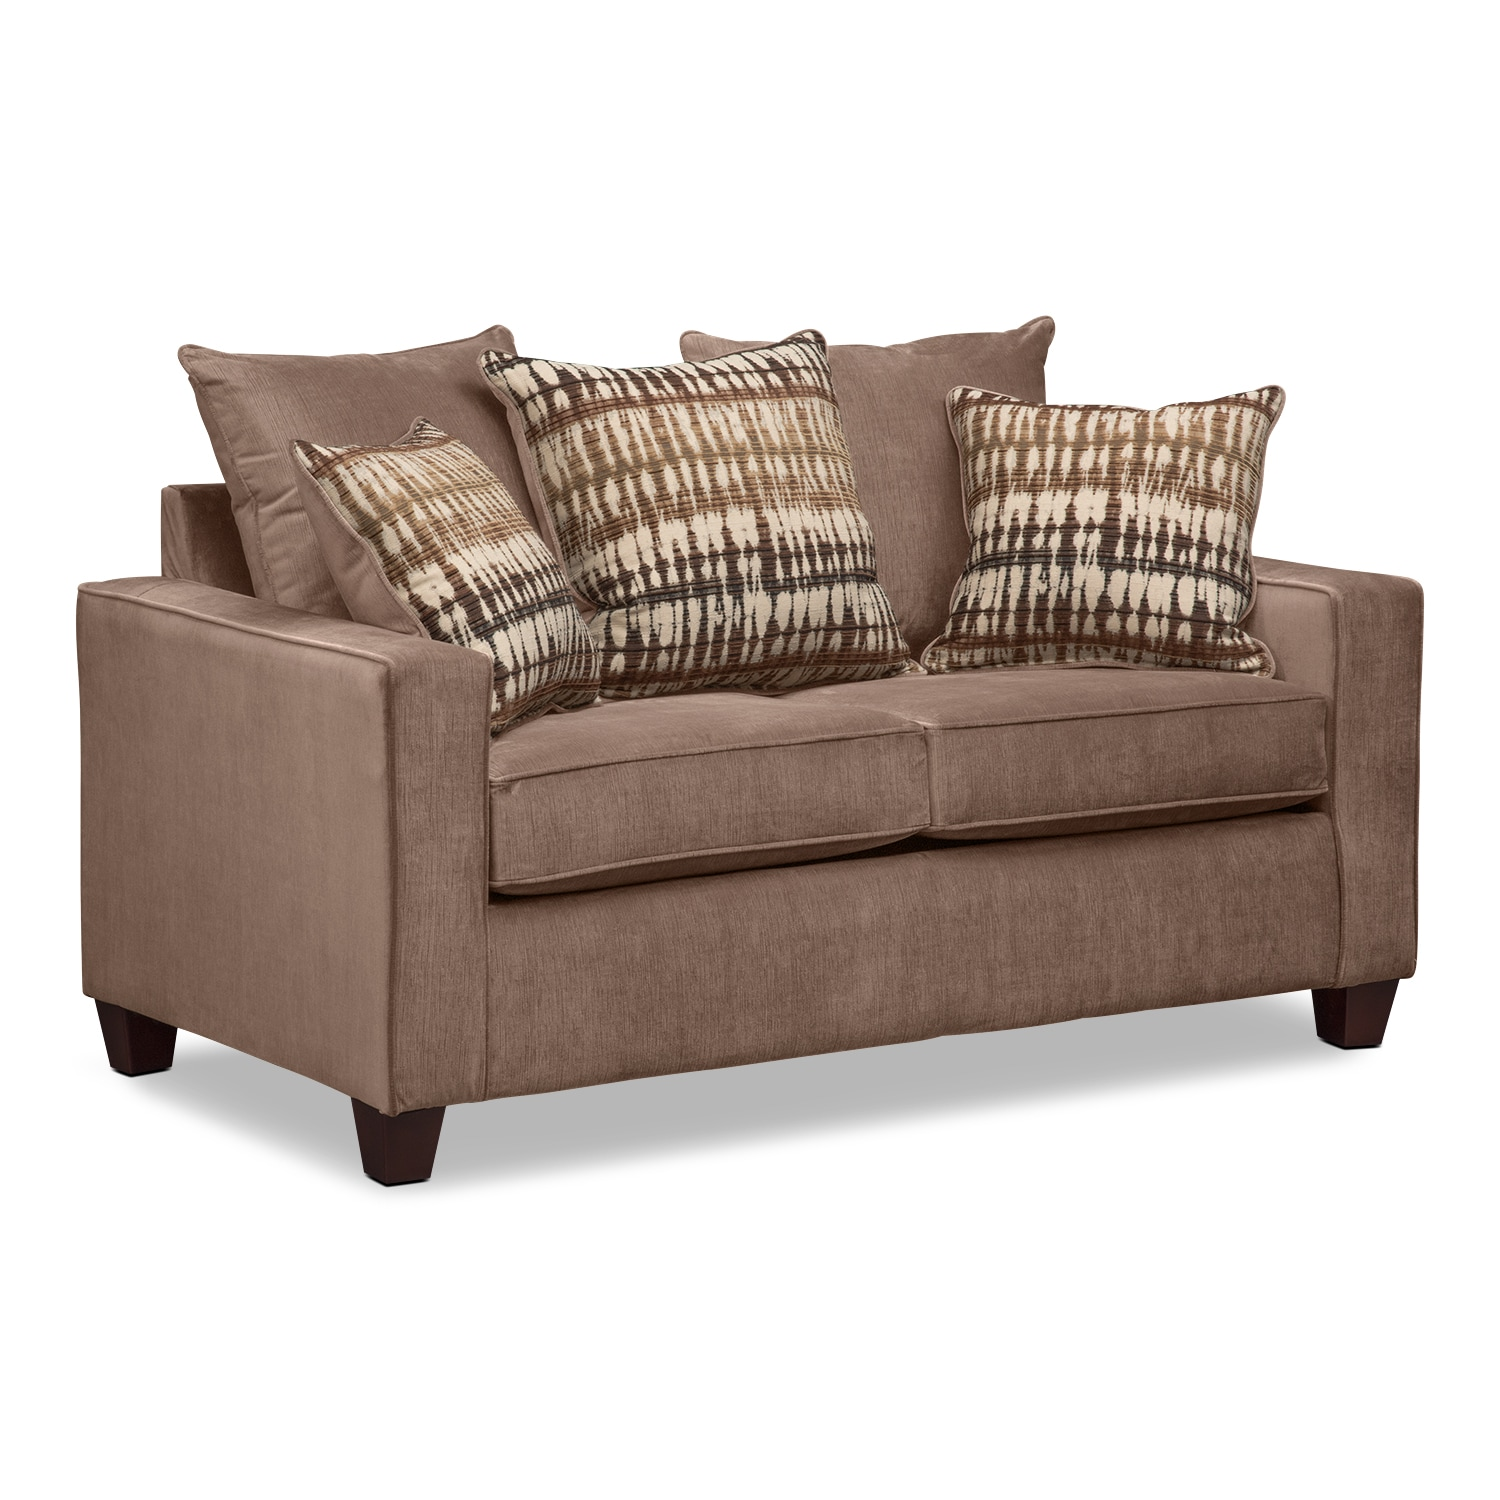 Bryden Queen Memory Foam Sleeper Sofa And Loveseat Set Chocolate American Signature Furniture